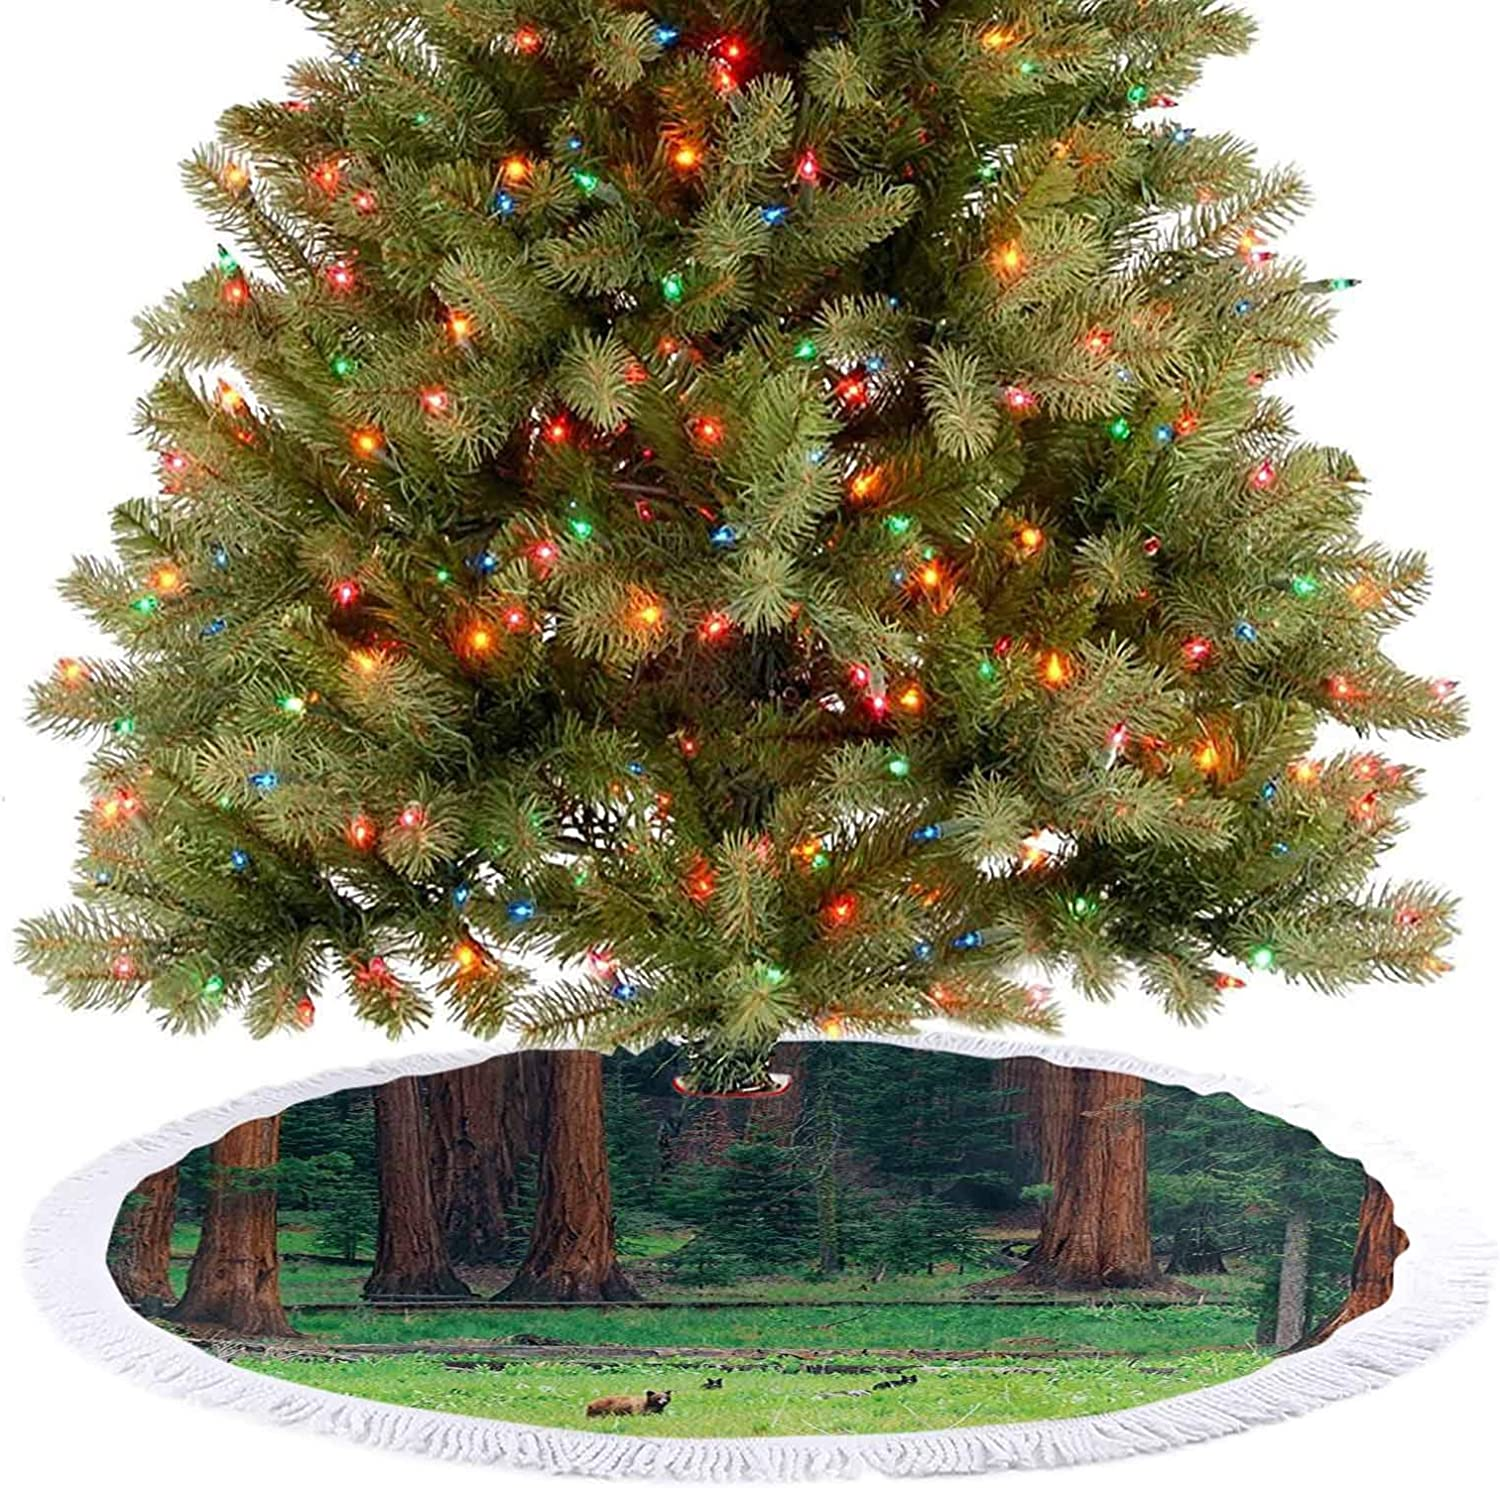 Adorise Tree Skirt Decor Baby Bears on Field in Nature Area Recreation Rest Sequoia Tree Green Brown New Year Festival Ornament Supplies for Christmas Holiday Party Decorations - 30 Inch